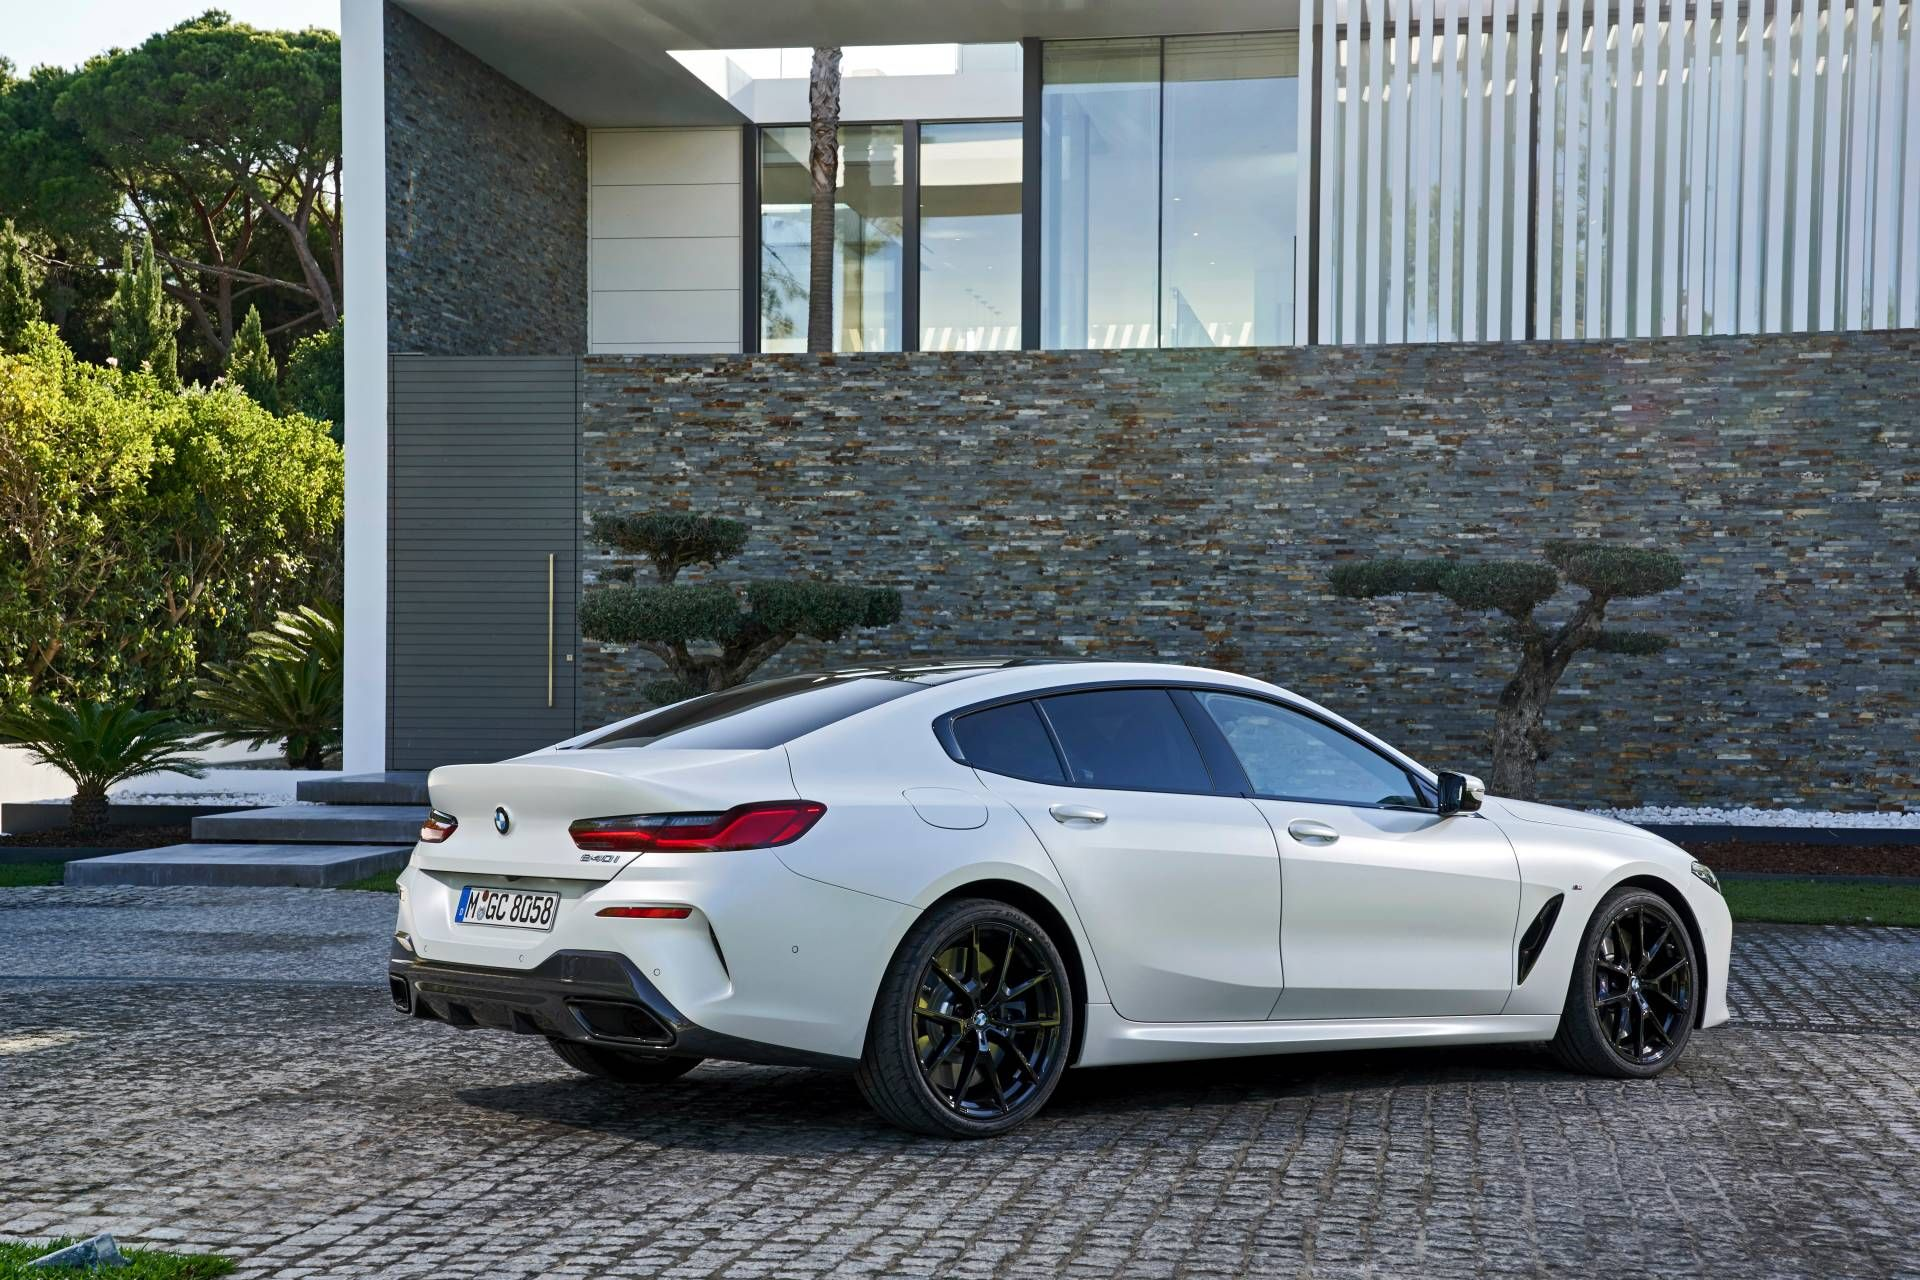 2020 Bmw 840i Gran Coupe Great White Shark Reviewed And Photographed In Detail Carscoops Bmw 840i 2020 Bmw Bmw